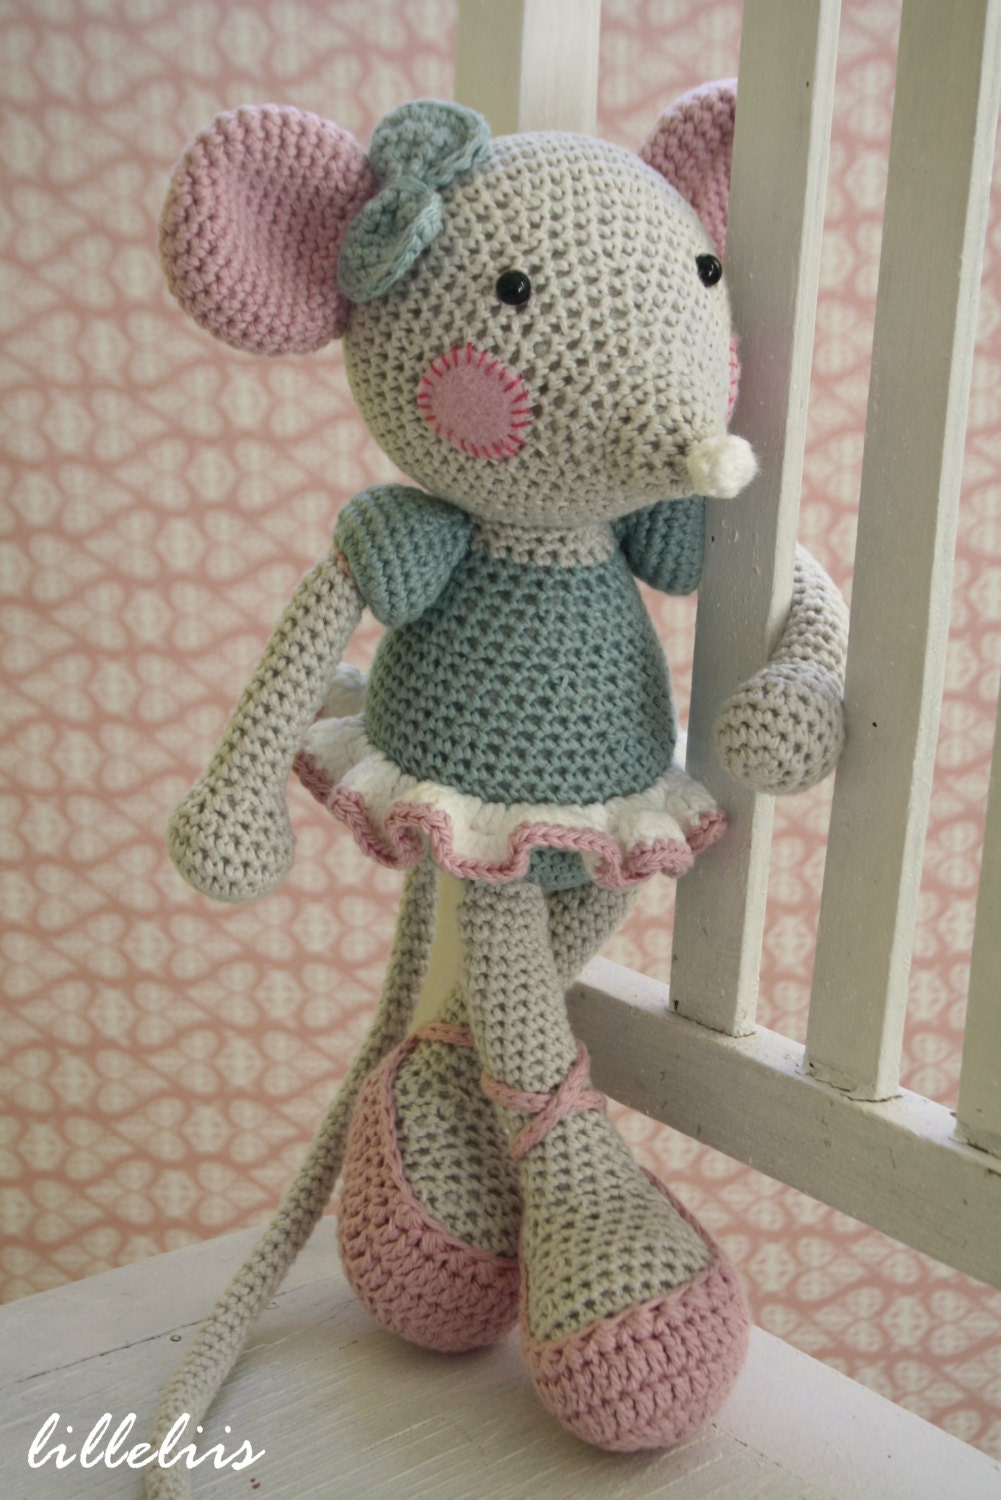 Ballerina Mouse Crochet Amigurumi Toy By Lilleliis On Etsy